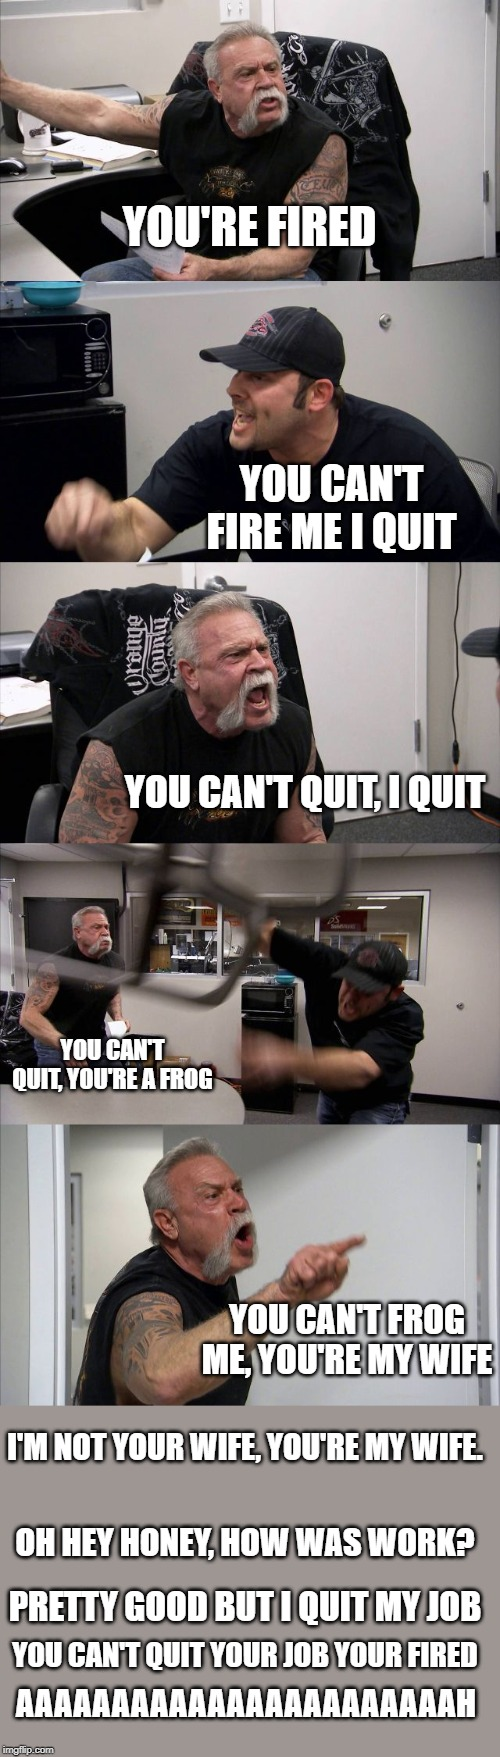 Asdf movie 12 scene | YOU'RE FIRED YOU CAN'T FIRE ME I QUIT YOU CAN'T QUIT, I QUIT YOU CAN'T QUIT, YOU'RE A FROG YOU CAN'T FROG ME, YOU'RE MY WIFE I'M NOT YOUR WI | image tagged in memes,american chopper argument,asdfmovie | made w/ Imgflip meme maker